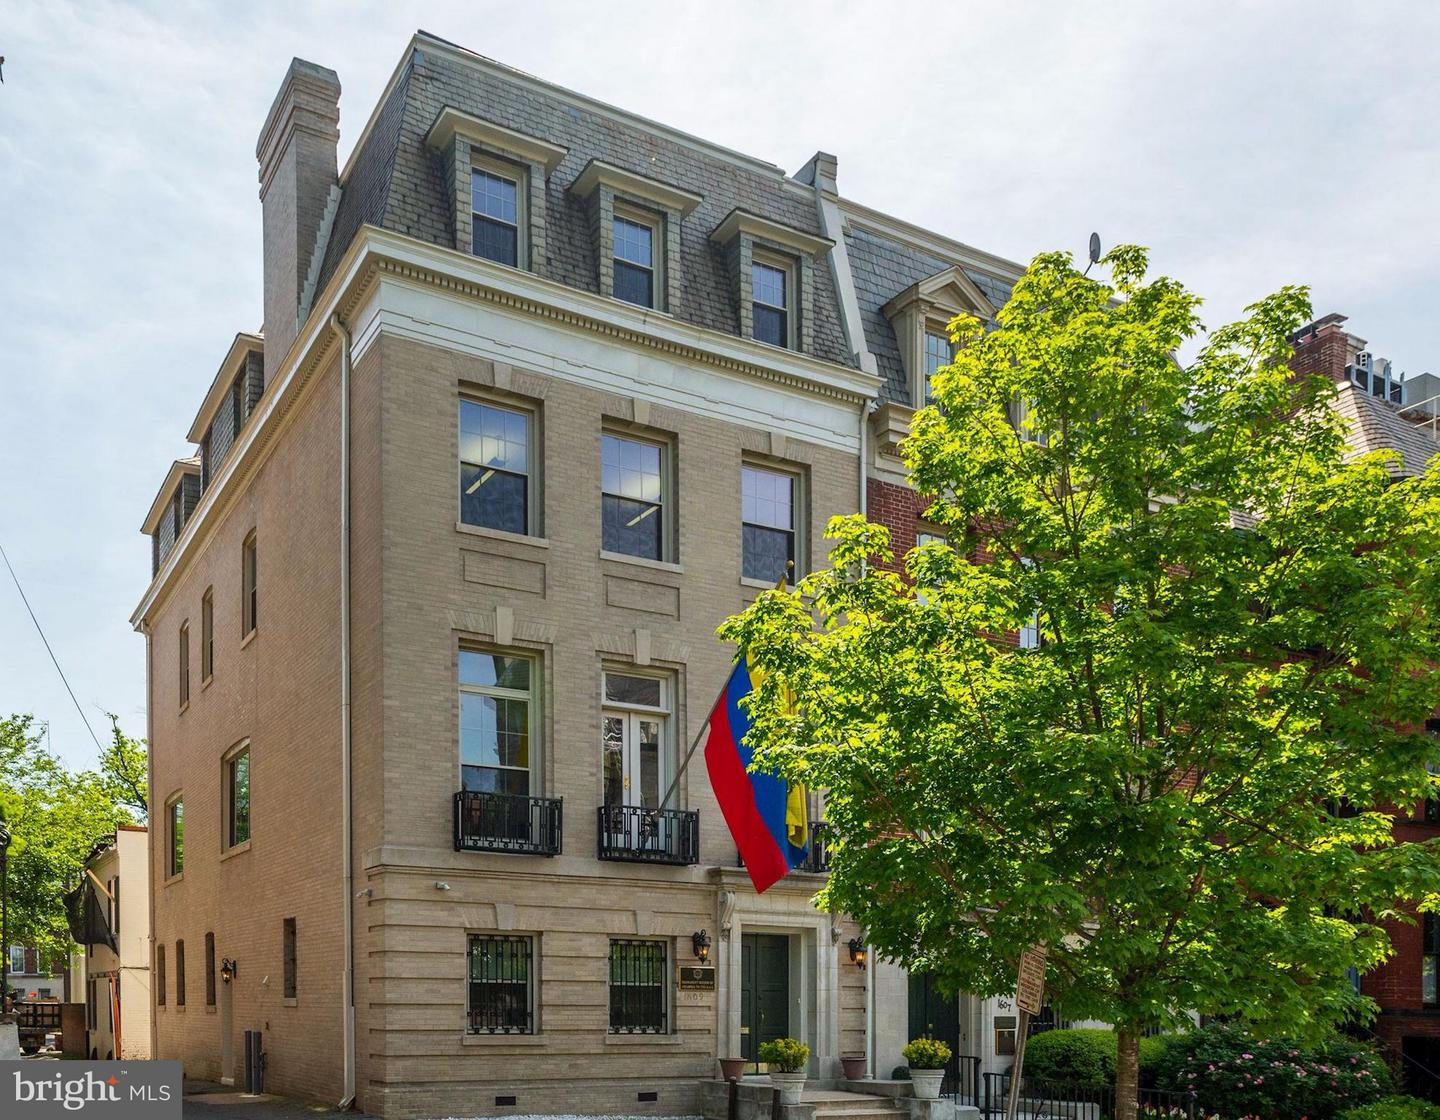 Single Family Home for Sale at 1609 22nd St NW Washington, District Of Columbia 20008 United States